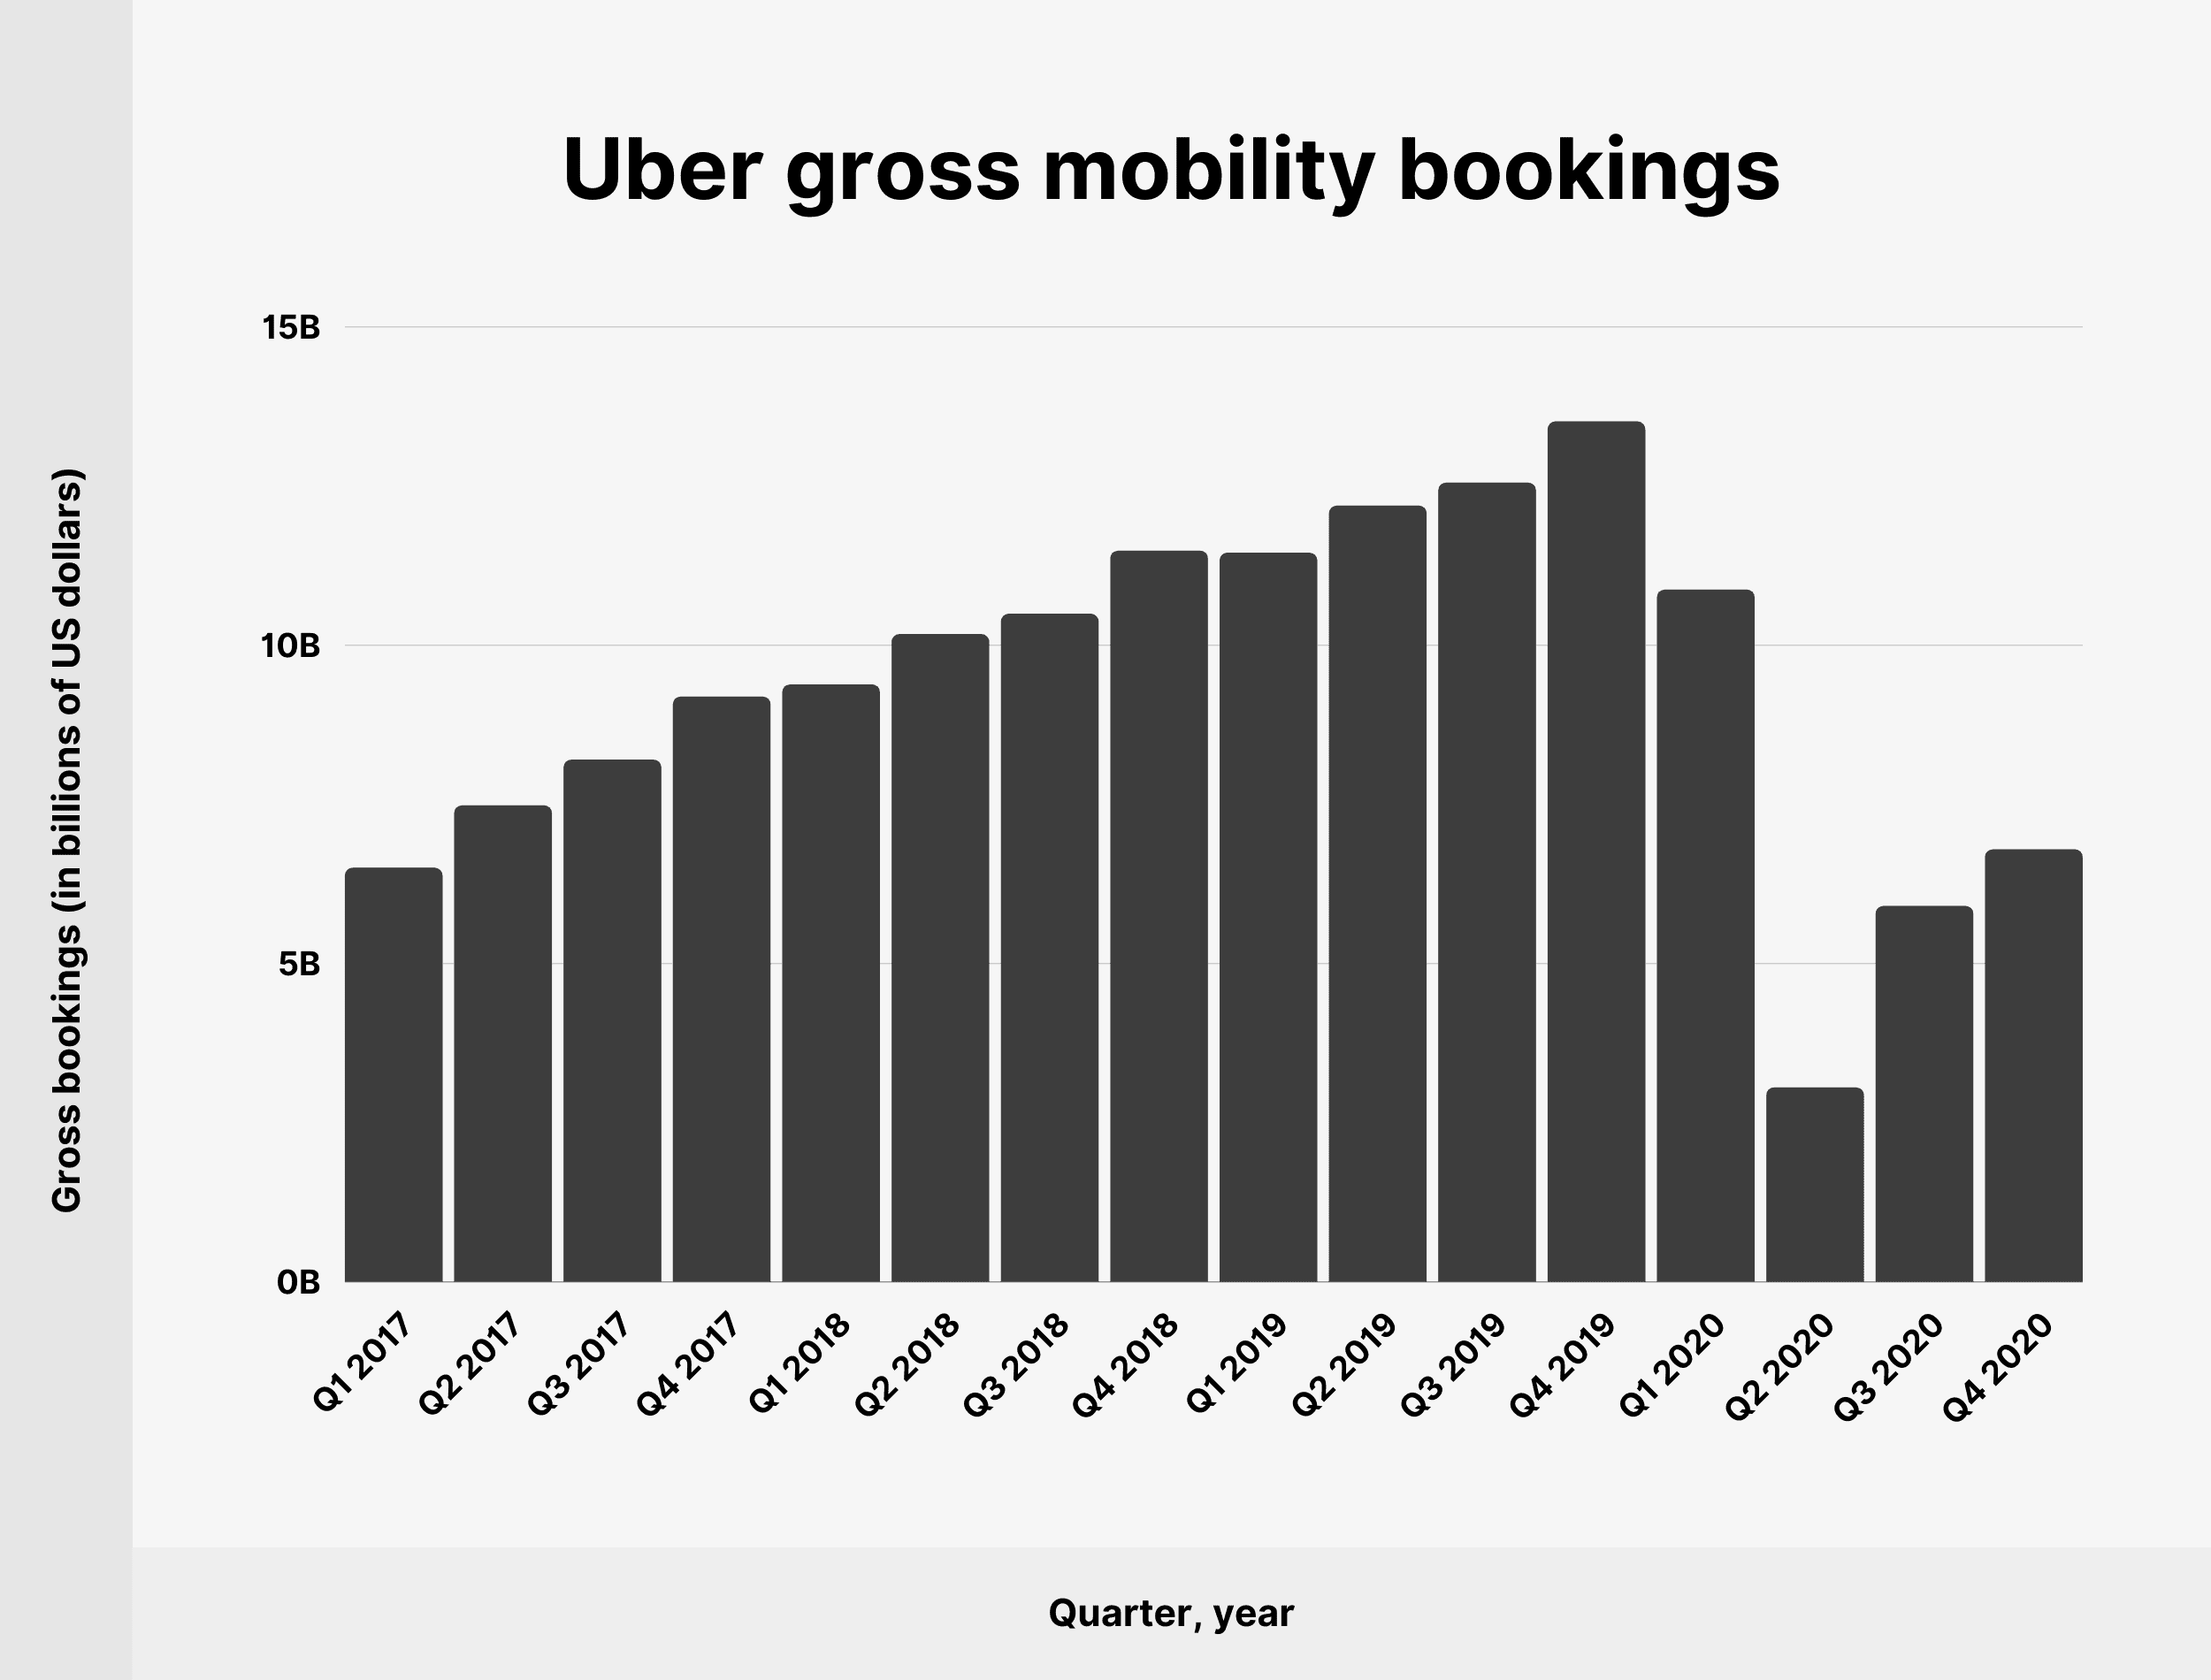 Uber gross mobility bookings